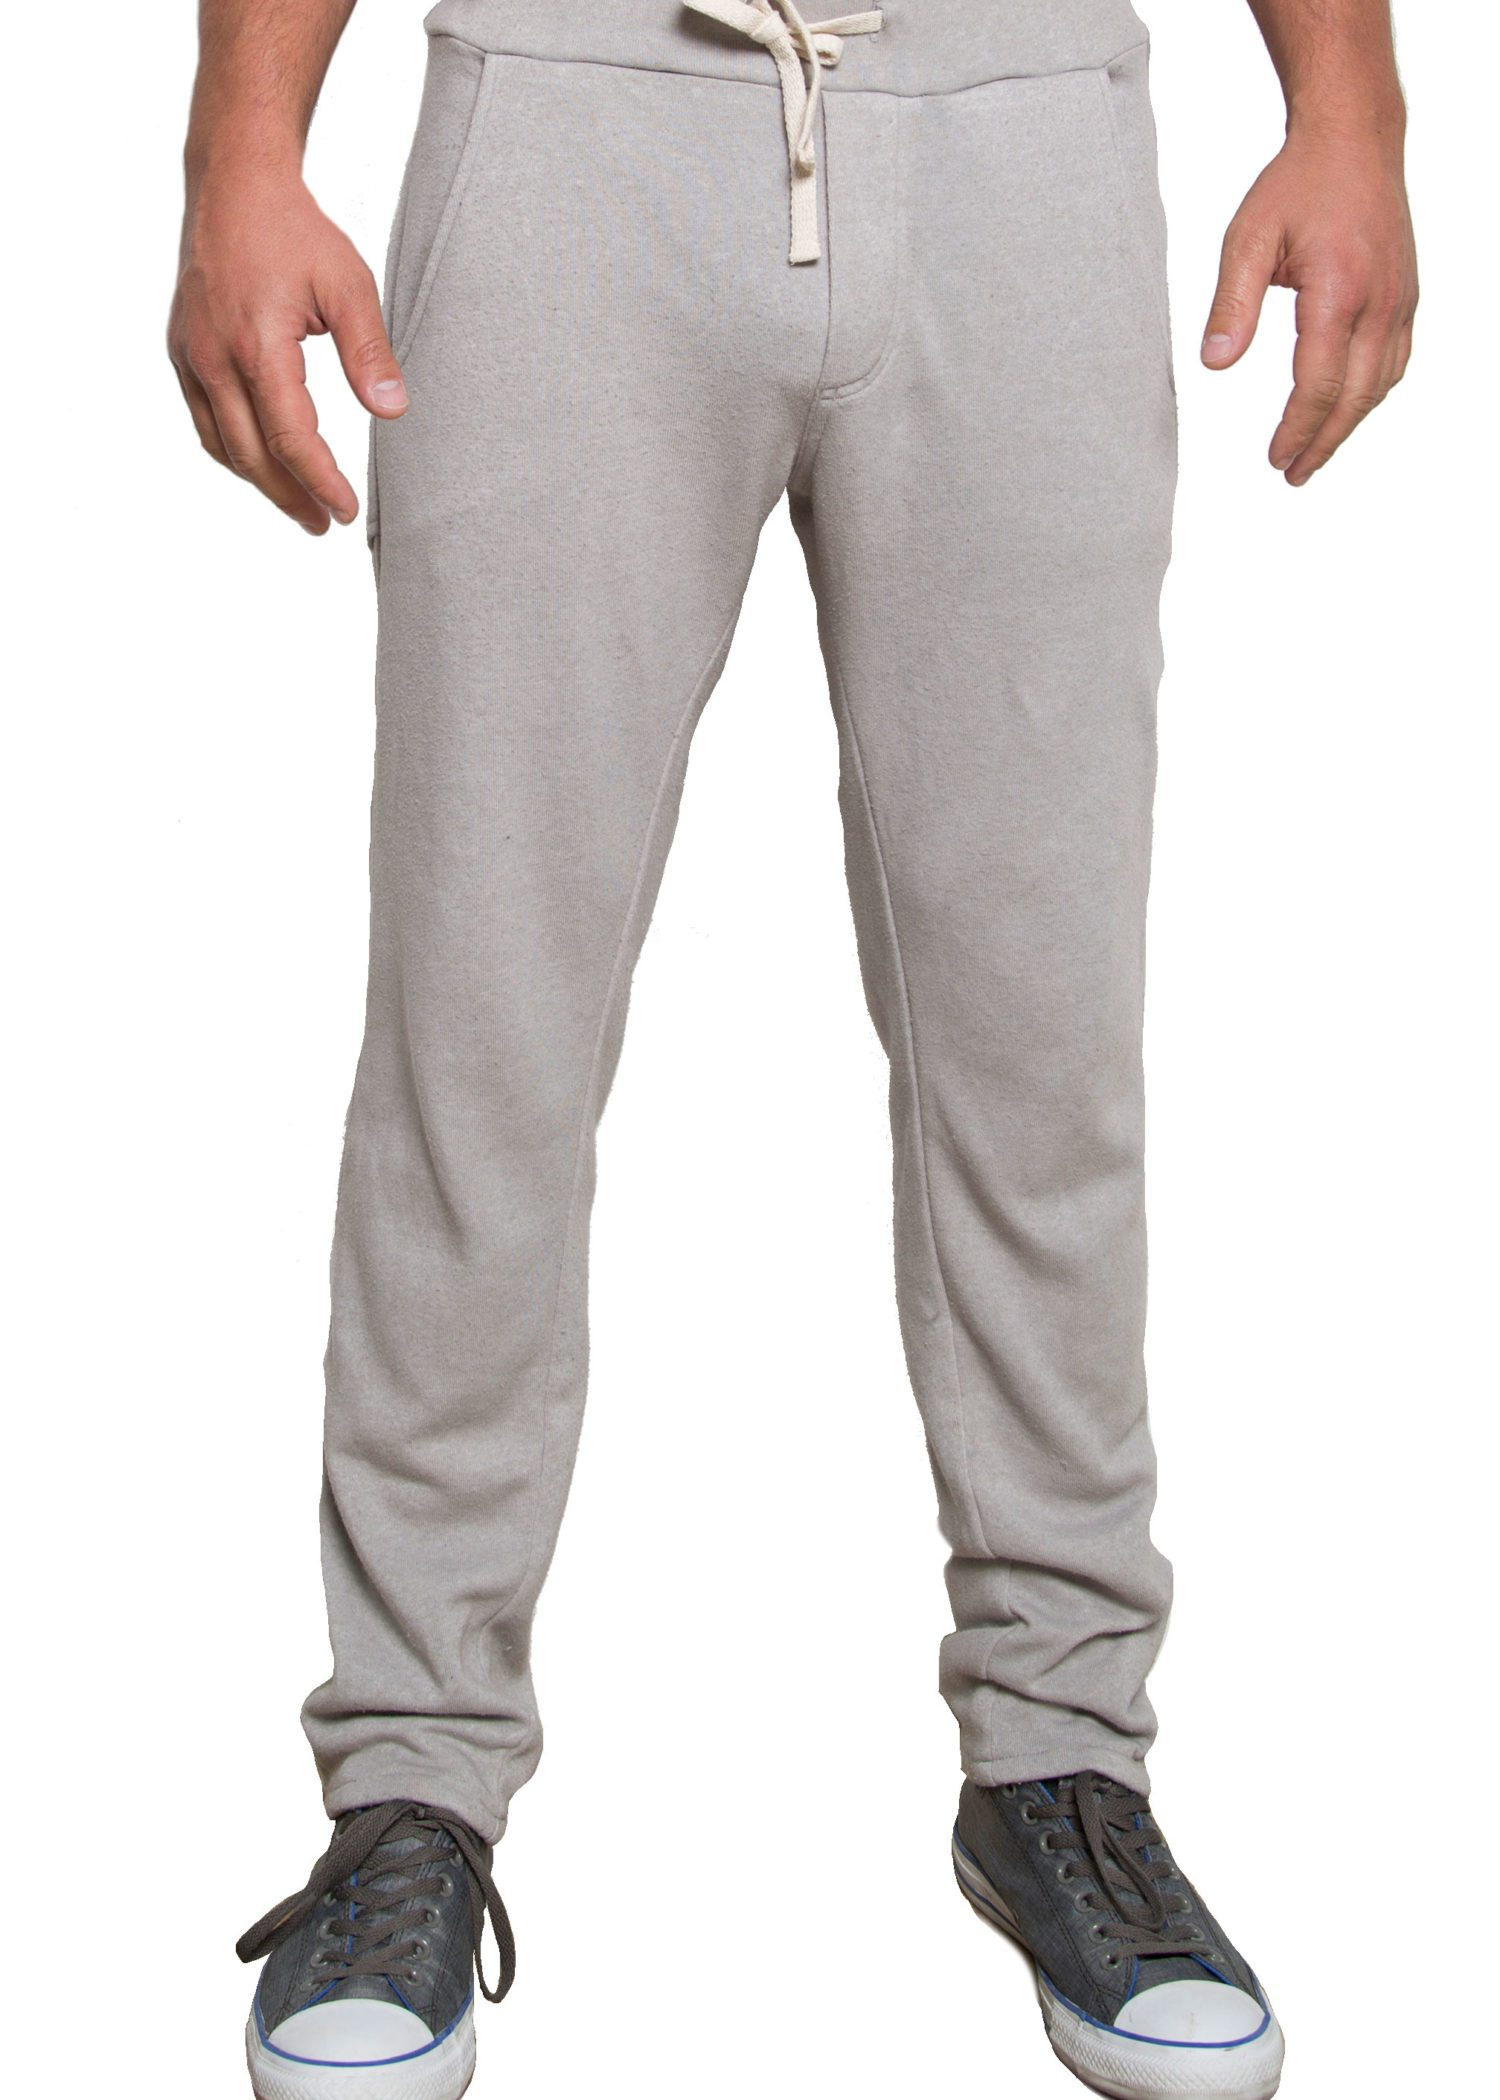 Skinny Custom Lounge Pant for Men